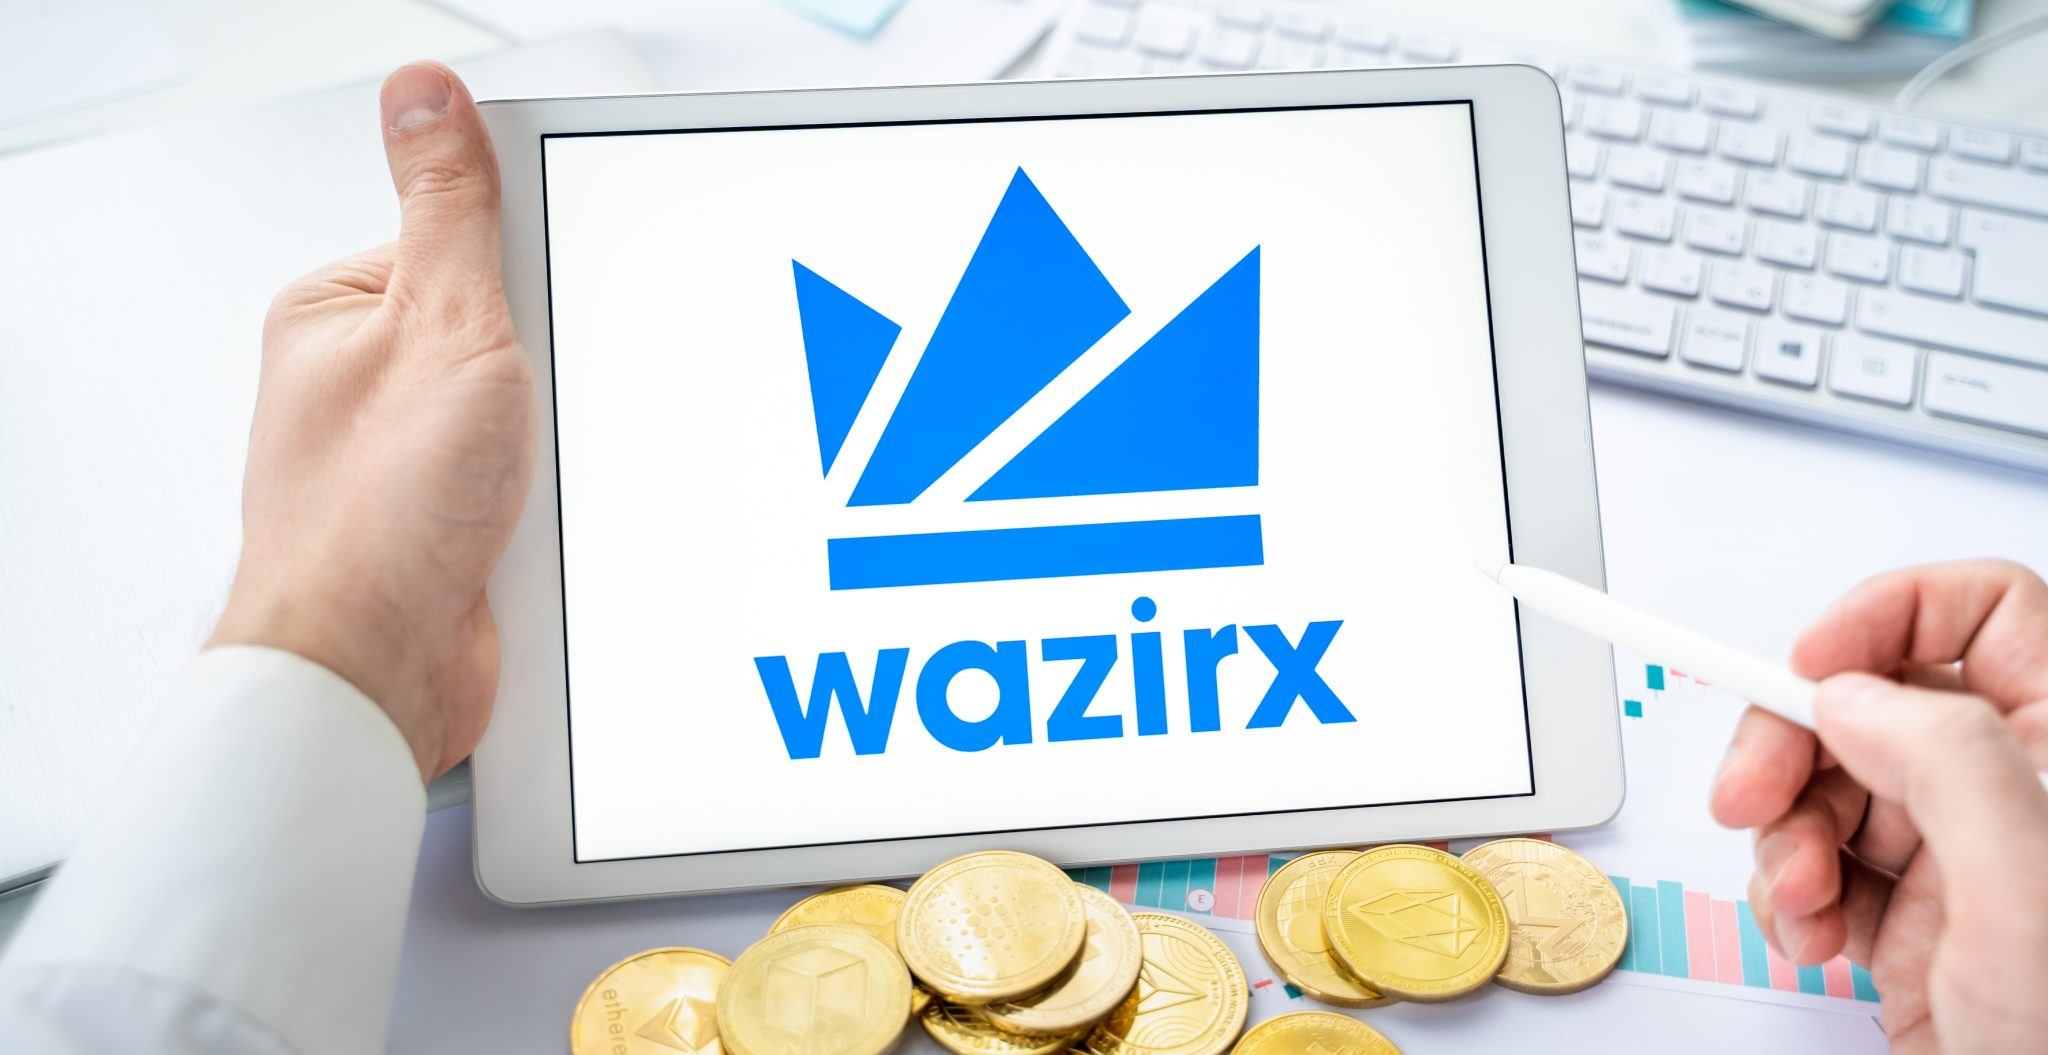 Russia Moscow 06.05.2021.Businessman with tablet.Logo of cryptocurrency stock exchange Wazirx.Trading blockchain platform to buy,sell digital crypto coins,tokens Bitcoin,Ethereum.Business,investing.